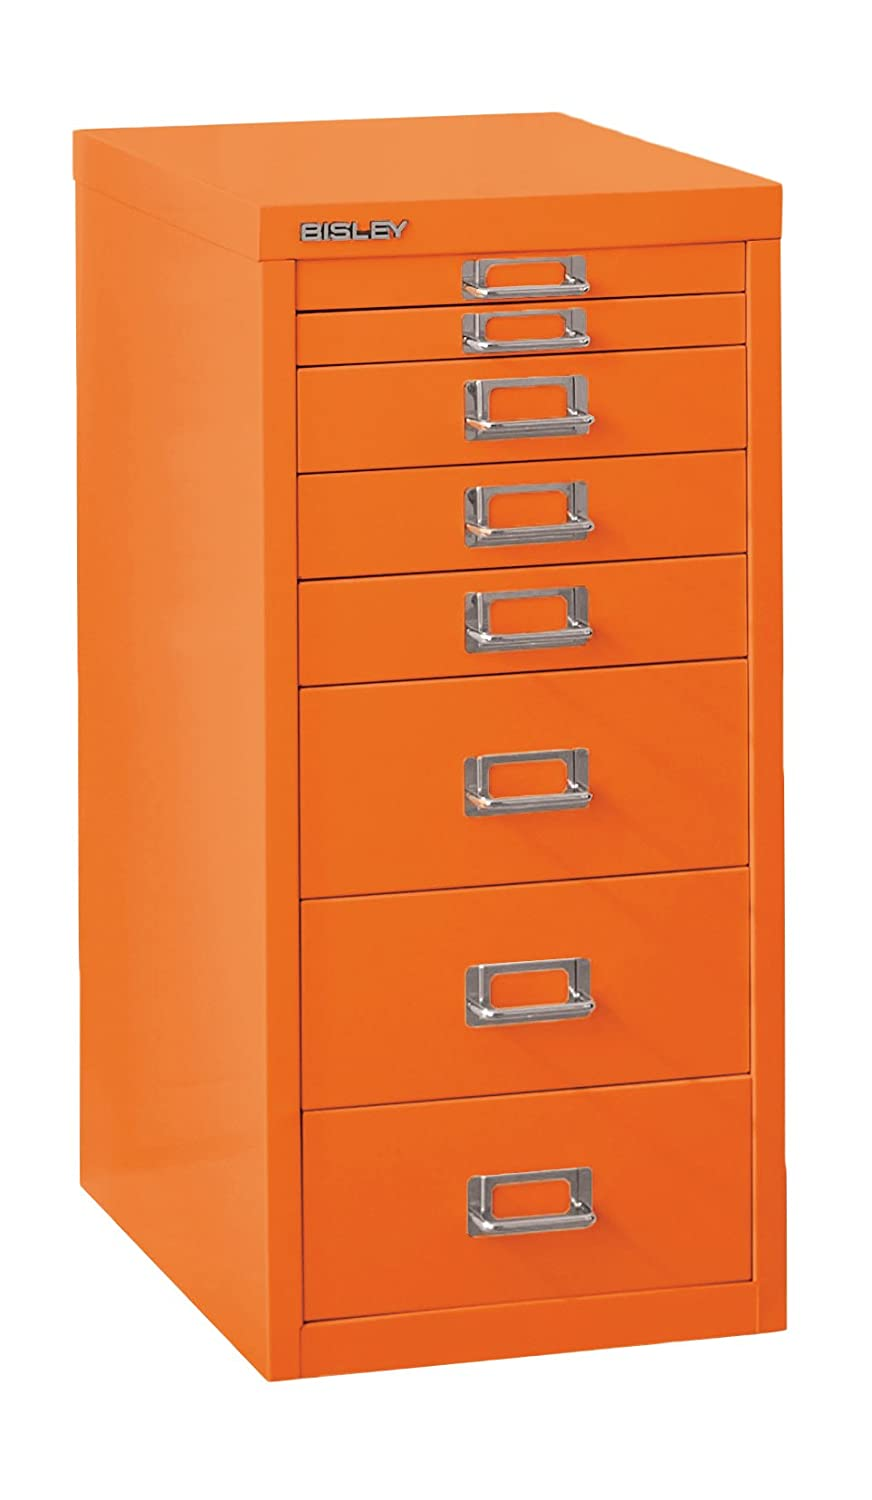 Bisley 8 Drawer Steel Multidrawer Storage Cabinet Filethree Ic Circuit Chipsjpg Wikimedia Commons Orange Md8 Or Office Products